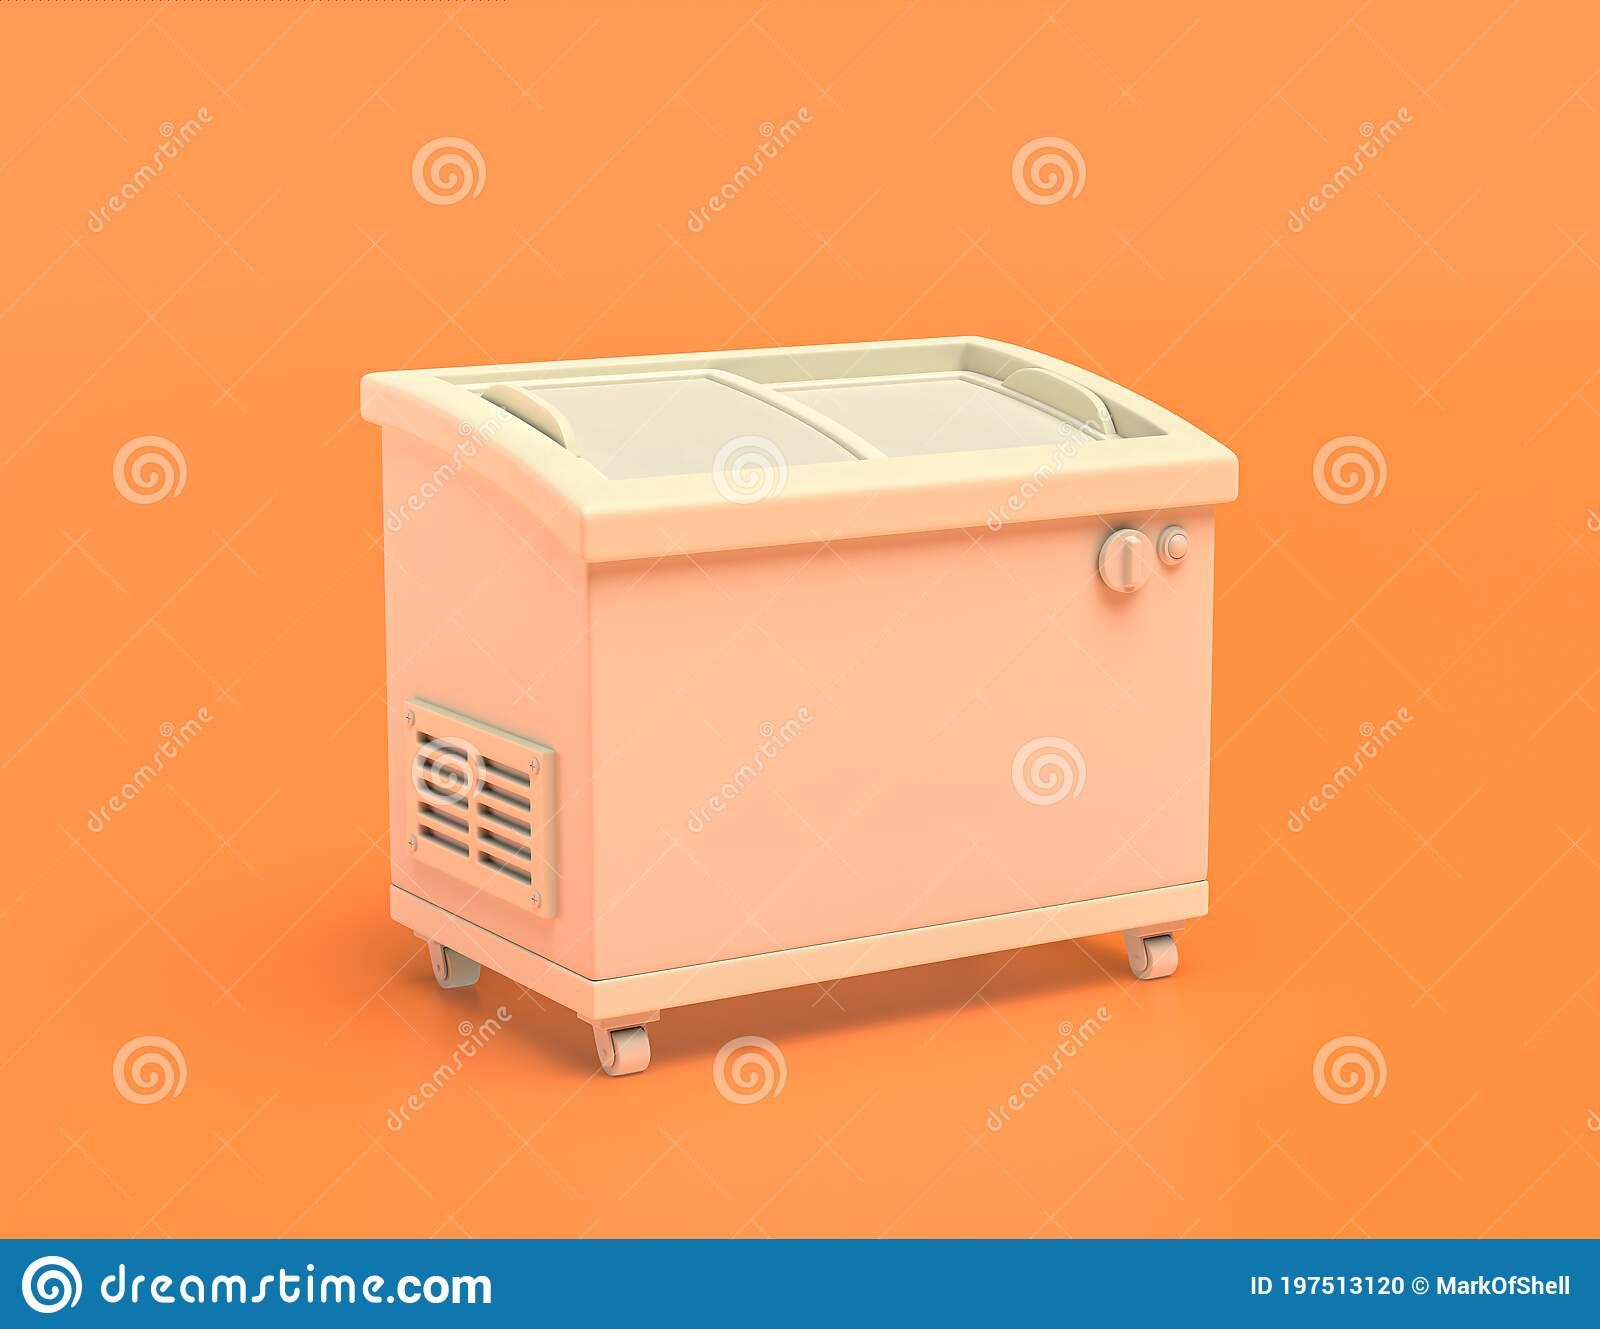 White Plastic Popcicle Freezer In Yellow Orange Background Flat Colors Single Color 3d Rendering Stock Illustration Illustration Of Monochrome Kitchen 197513120